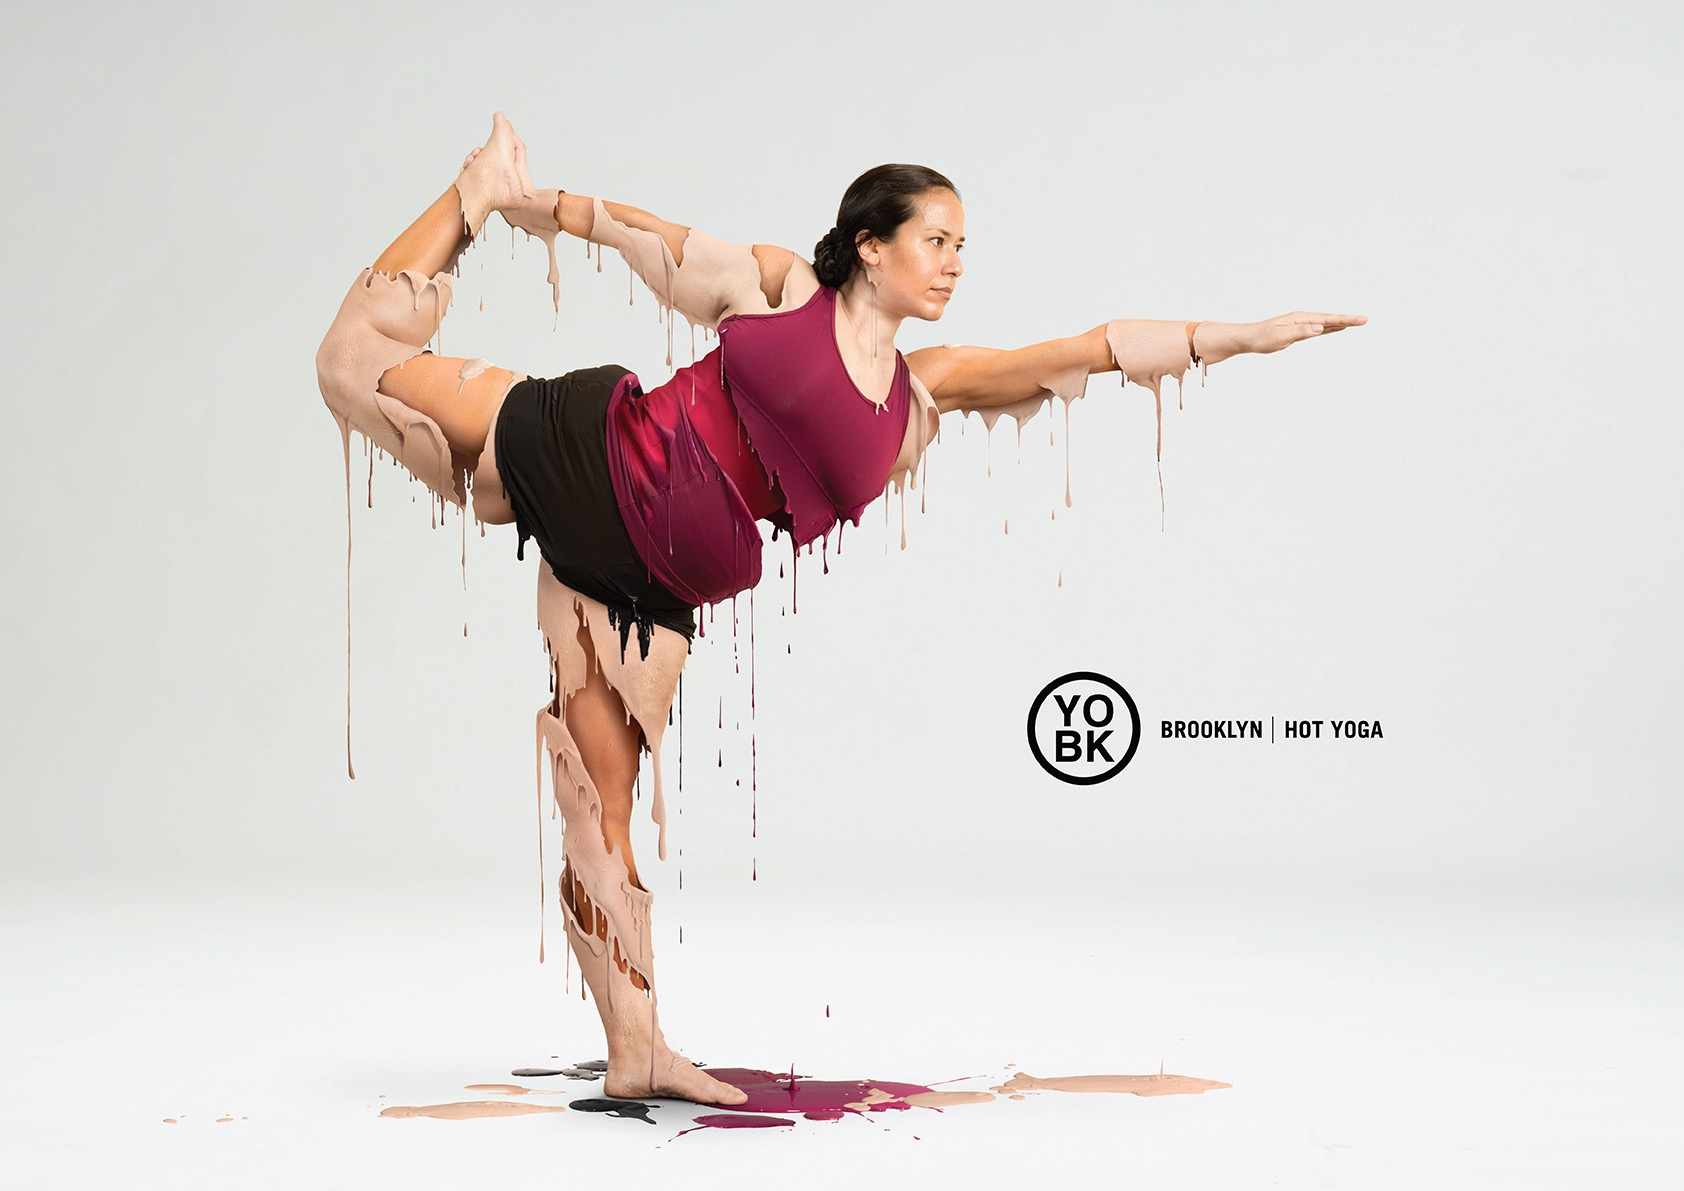 bk_yo_hot_yoga_1_rgb_721_aotw